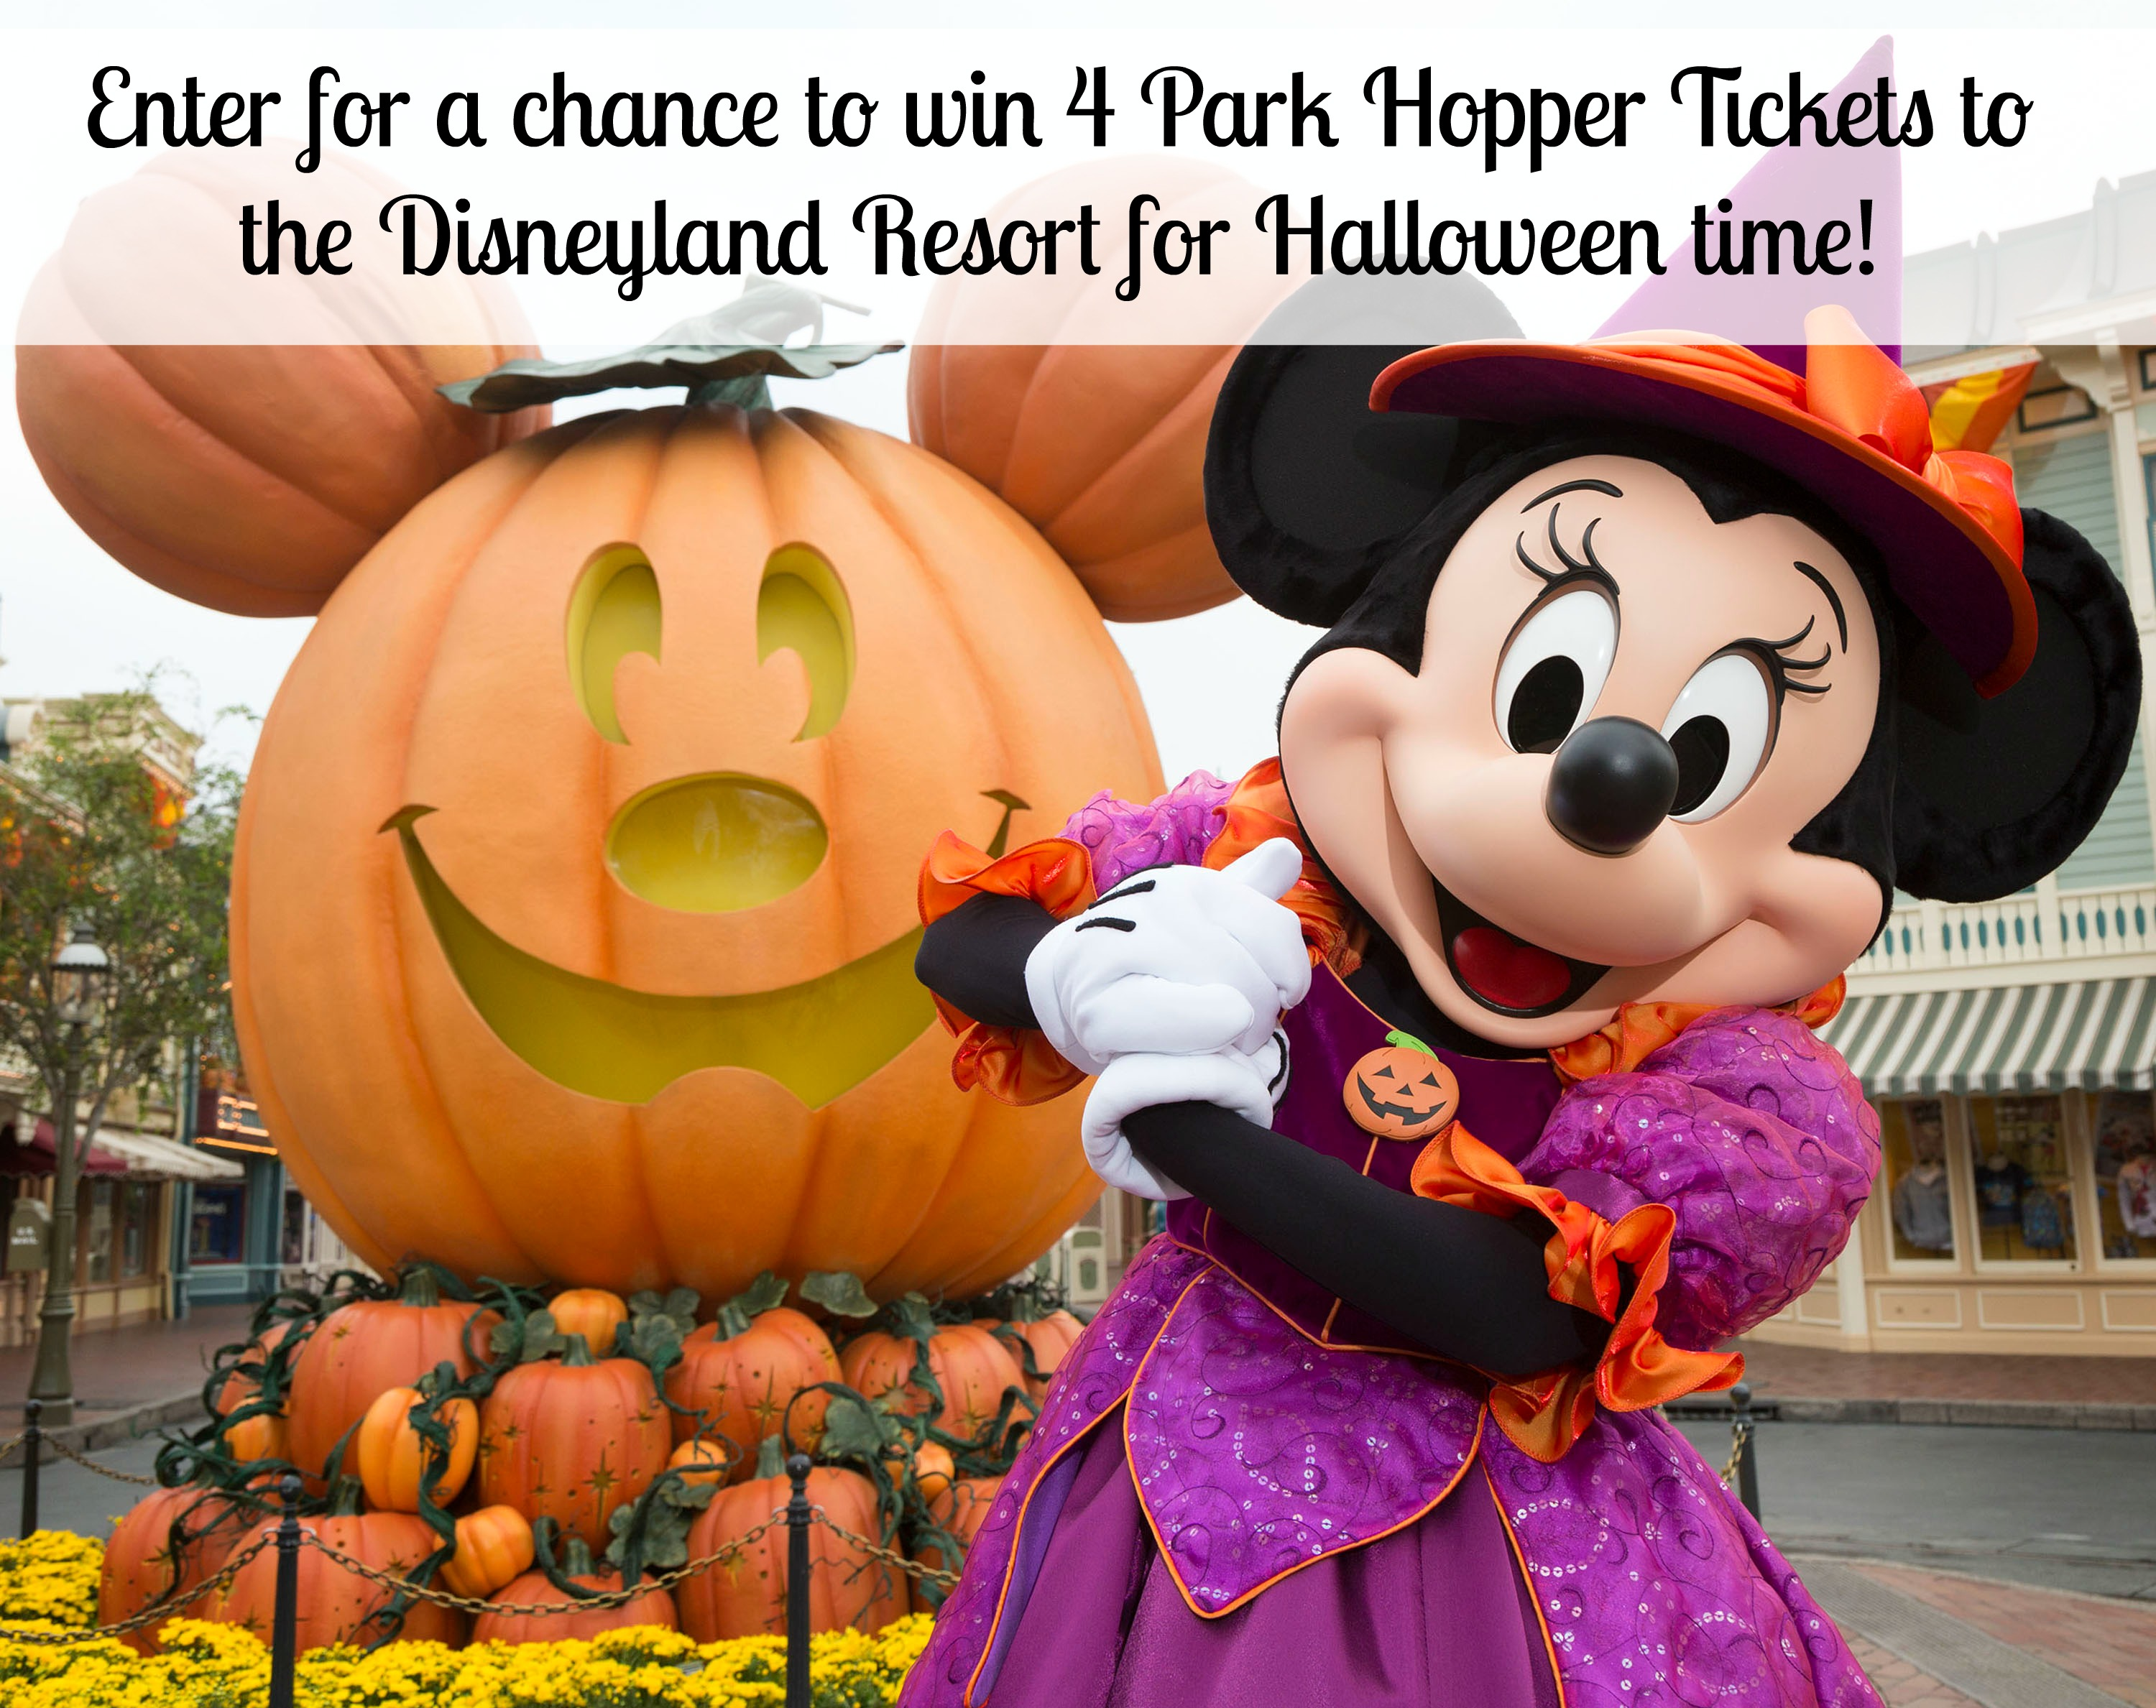 disneyland tickets giveaway for halloween time at disney!